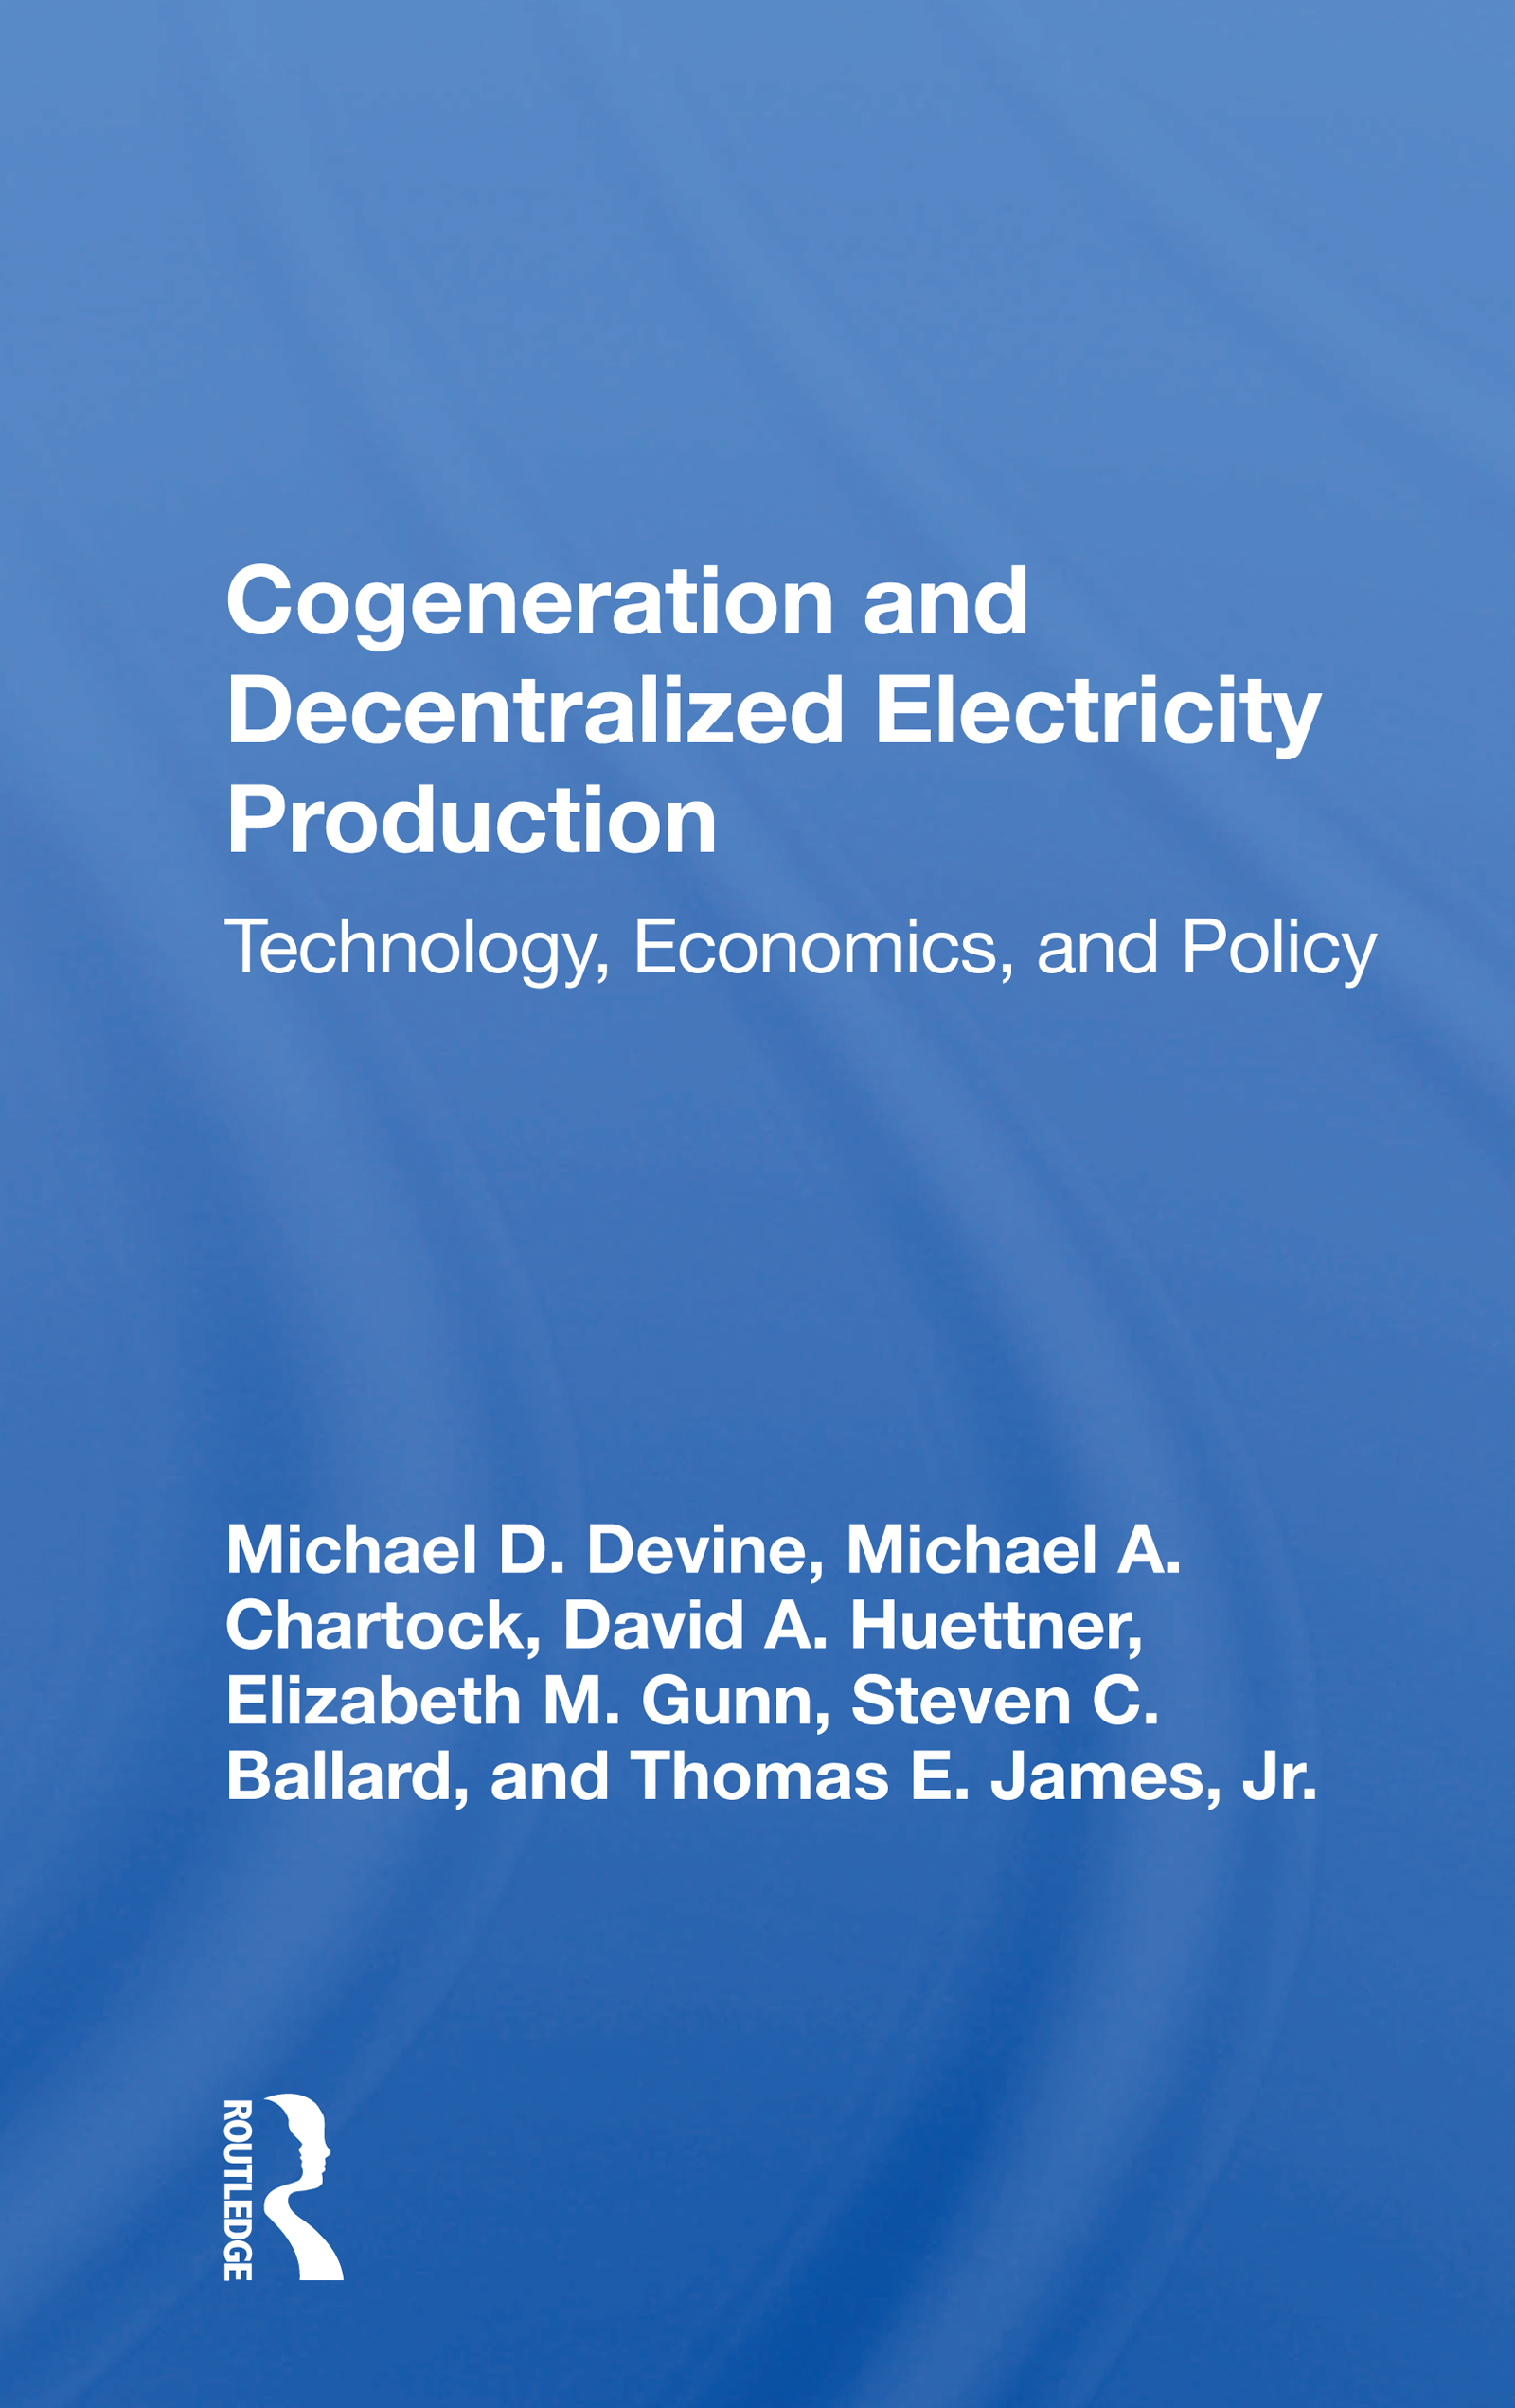 Cogeneration and Decentralized Electricity Production